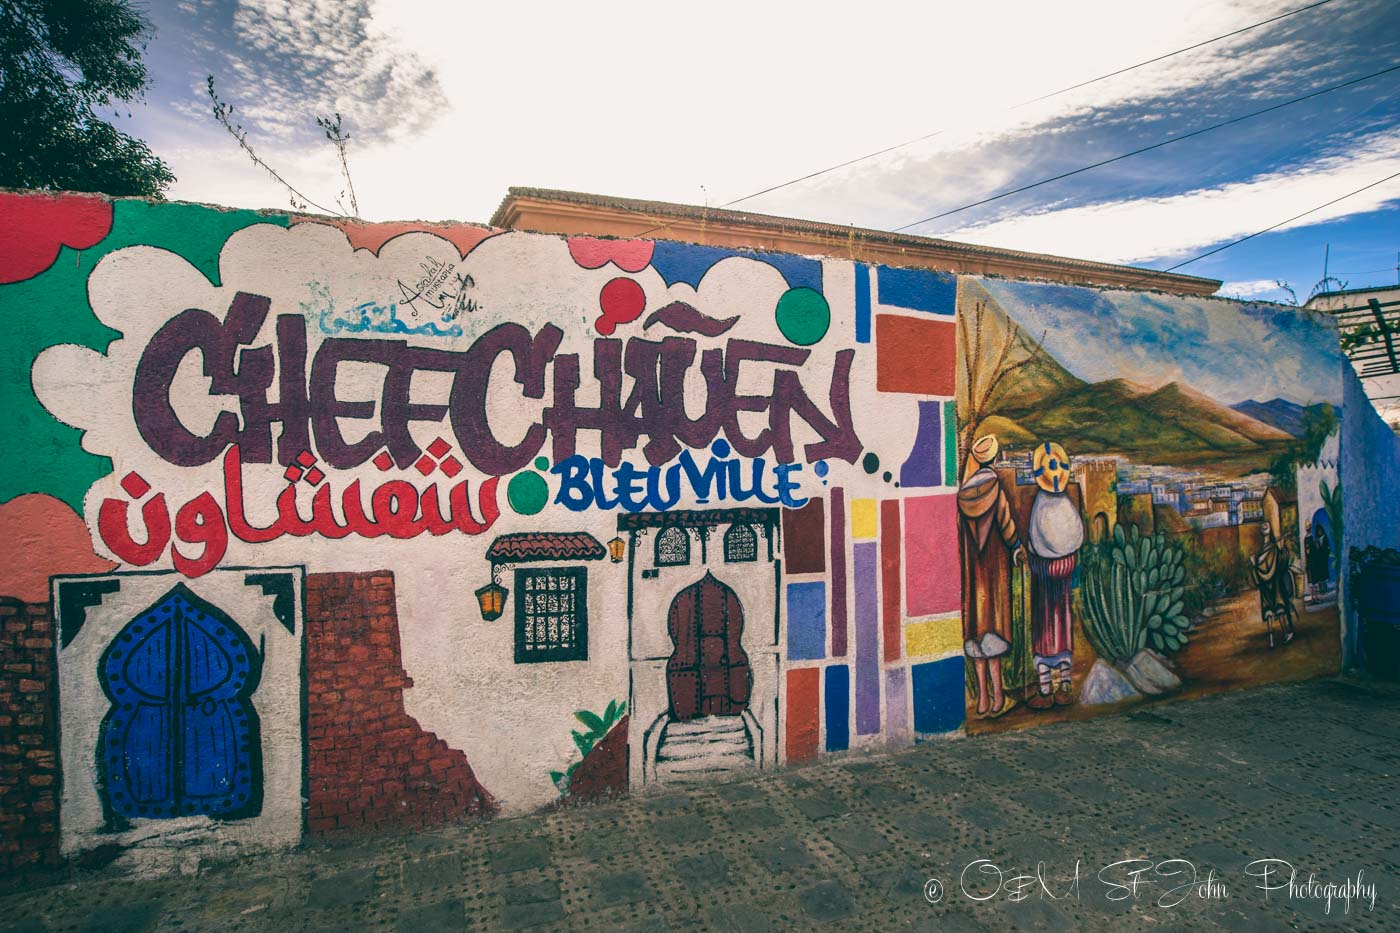 Graffity in Chefchaouen refers to the city as Blueville. Morocco